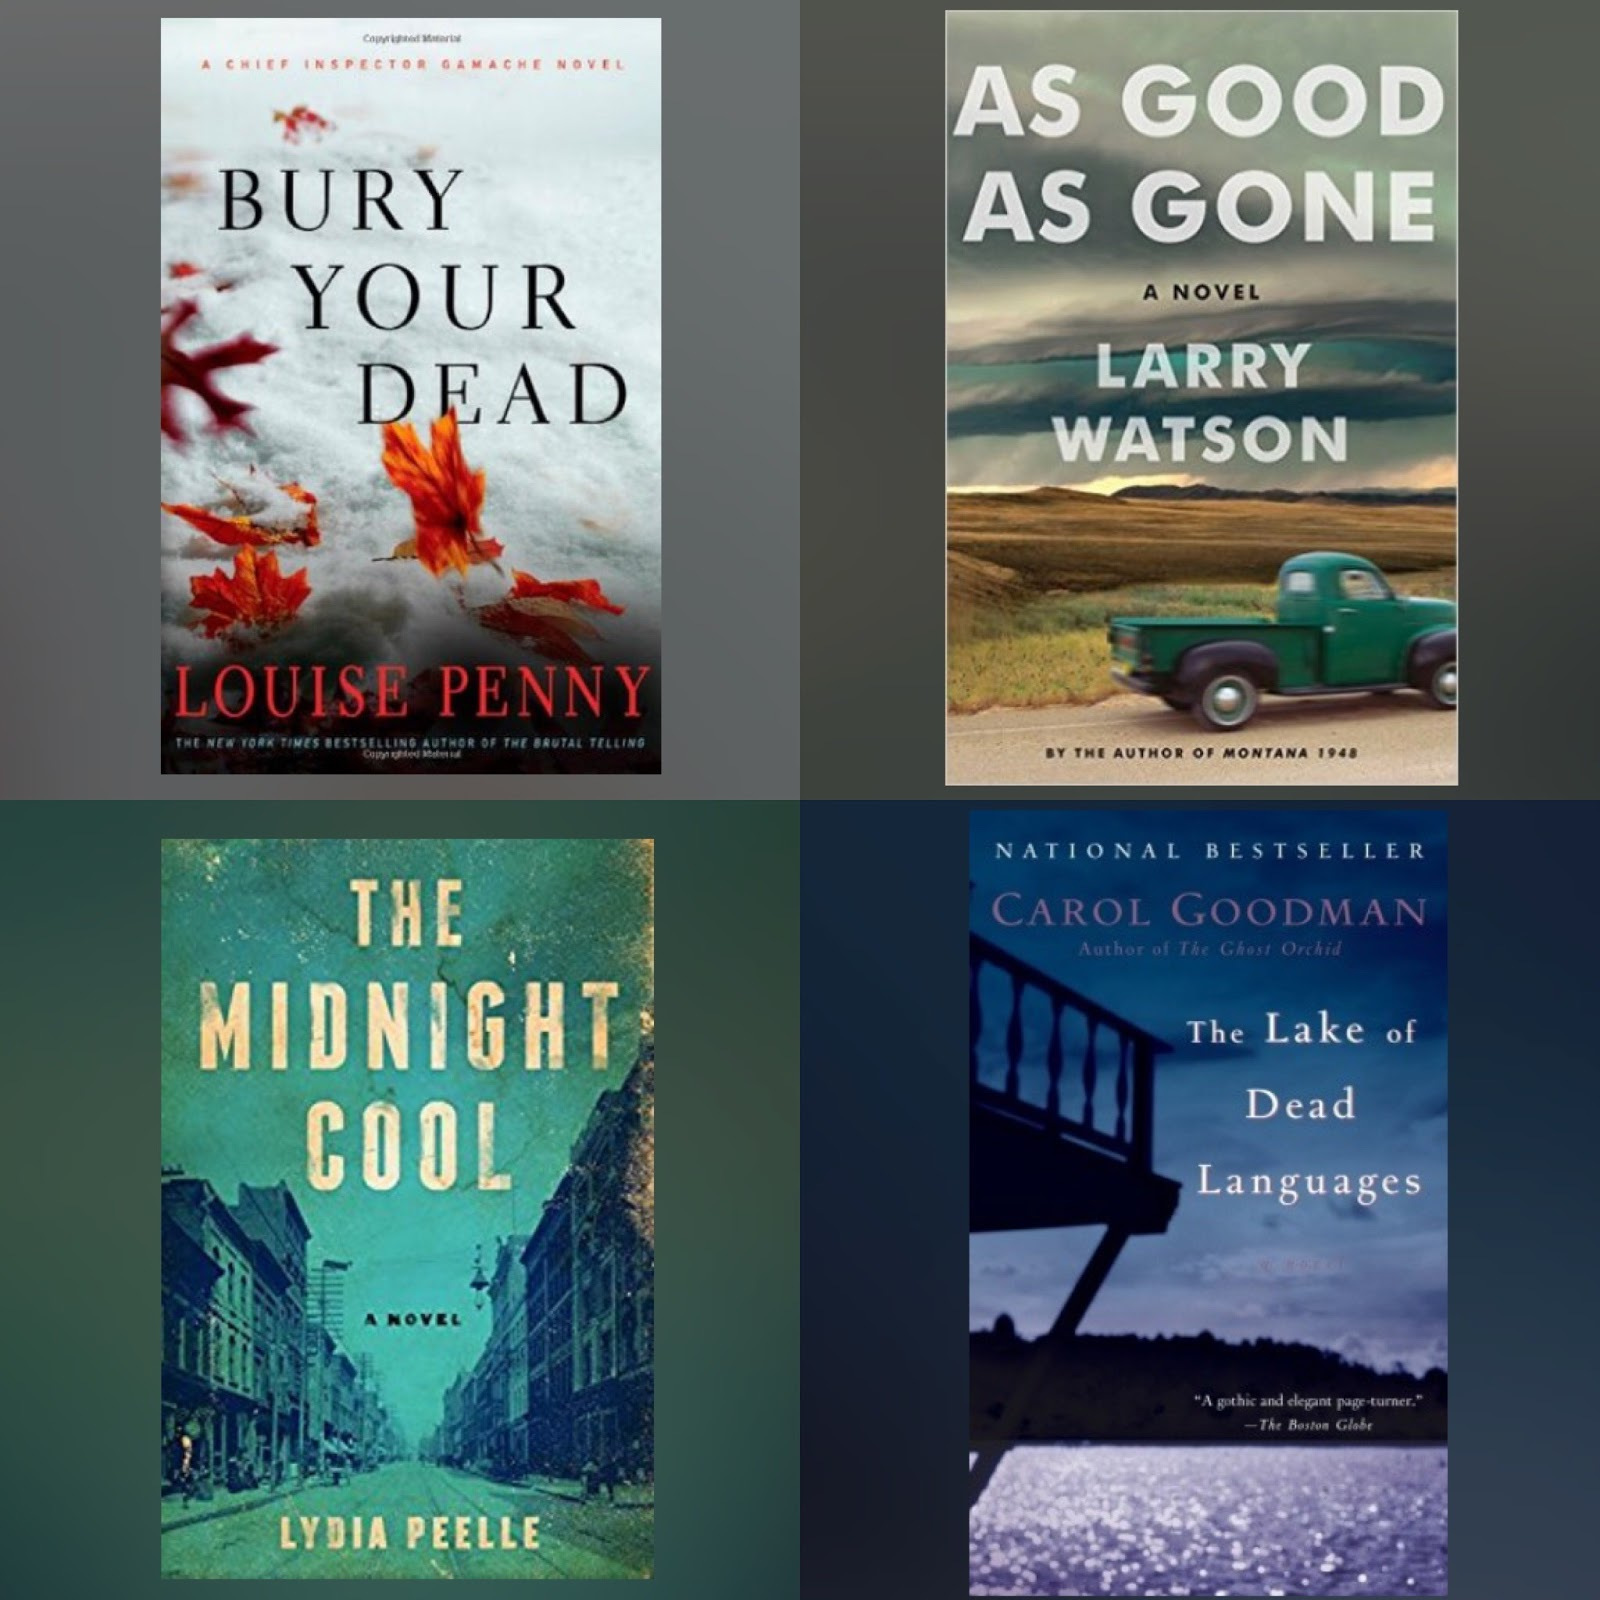 Bury Your Dead By Louise Penny The Midnight Cool By Lydia Peelle As Good As  Gone By Larry Watson The Lake Of Dead Languages By Carol Goodman